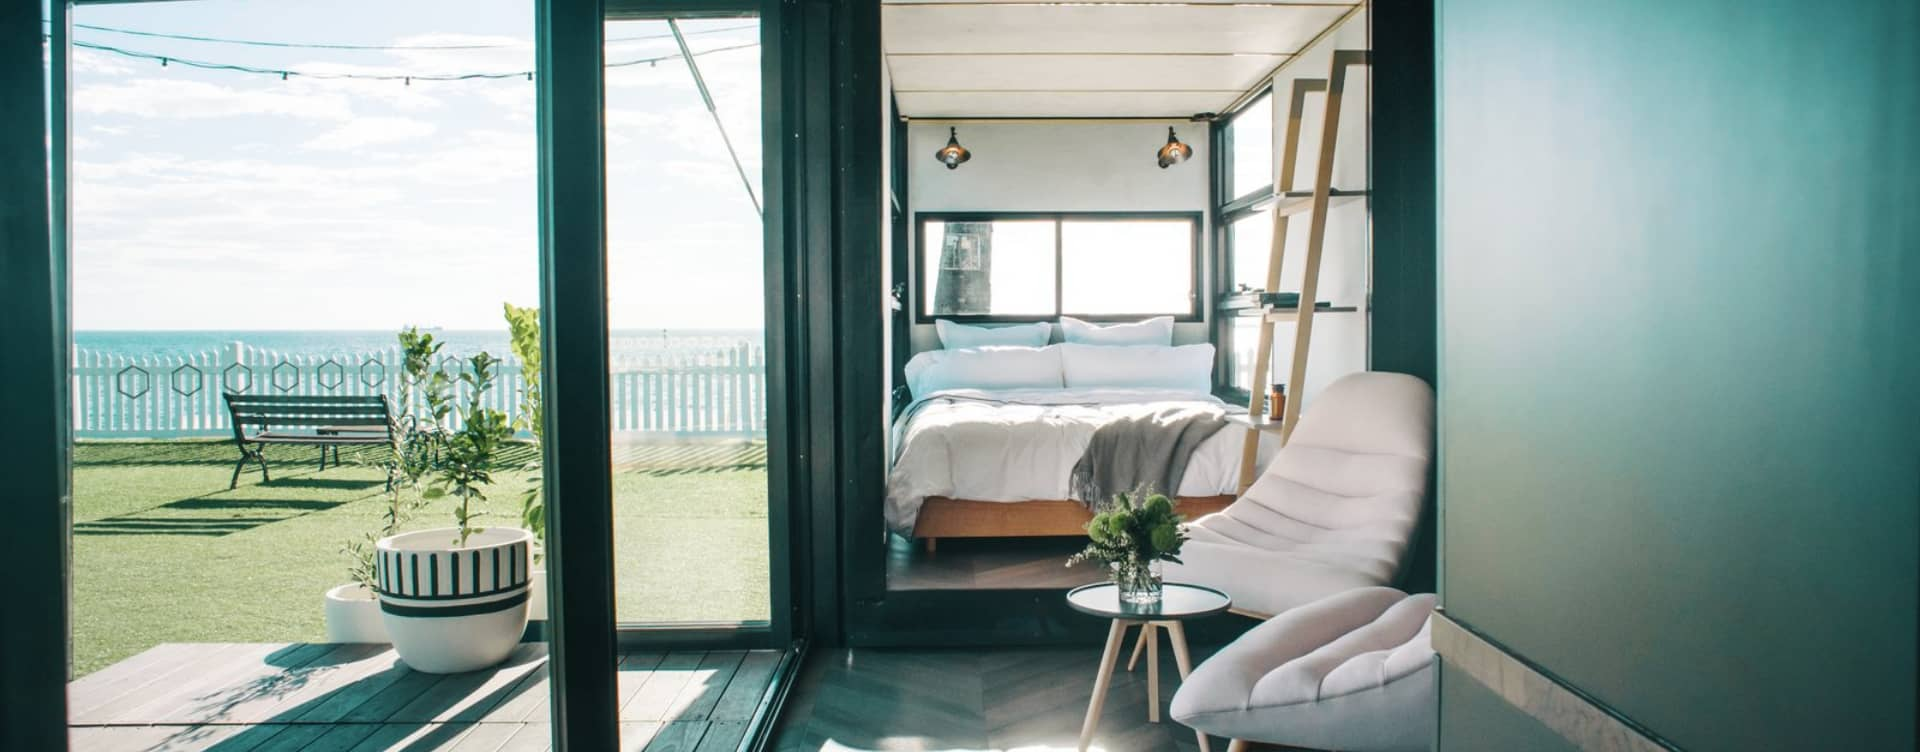 An interior design for a shipping container home